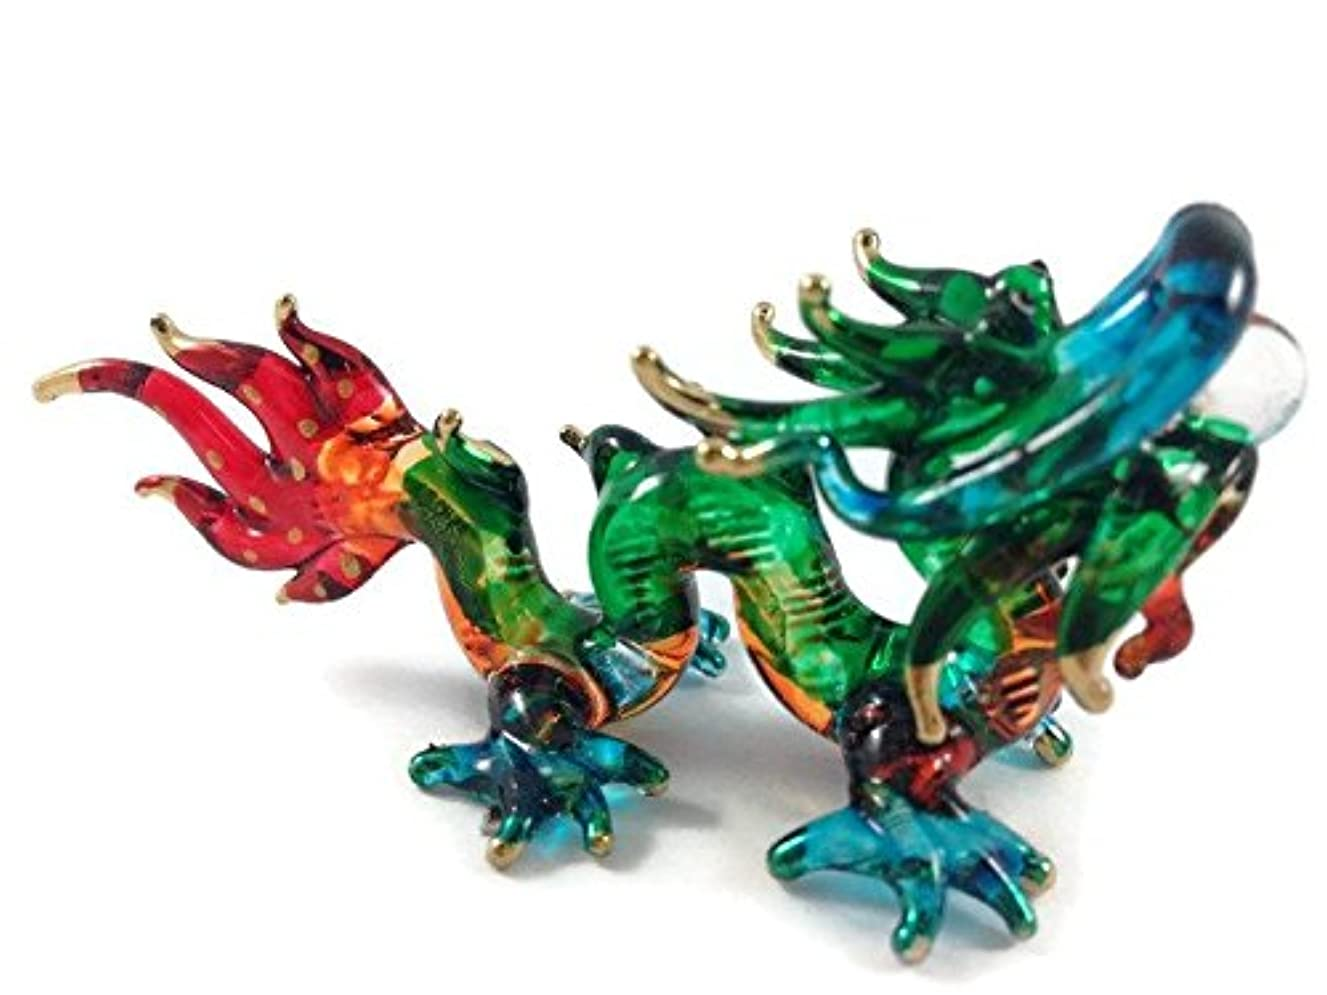 TINY CRYSTAL Dragon HAND BLOWN CLEAR GLASS ART Dragon FIGURINE ANIMALS COLLECTION GLASS BLOWN